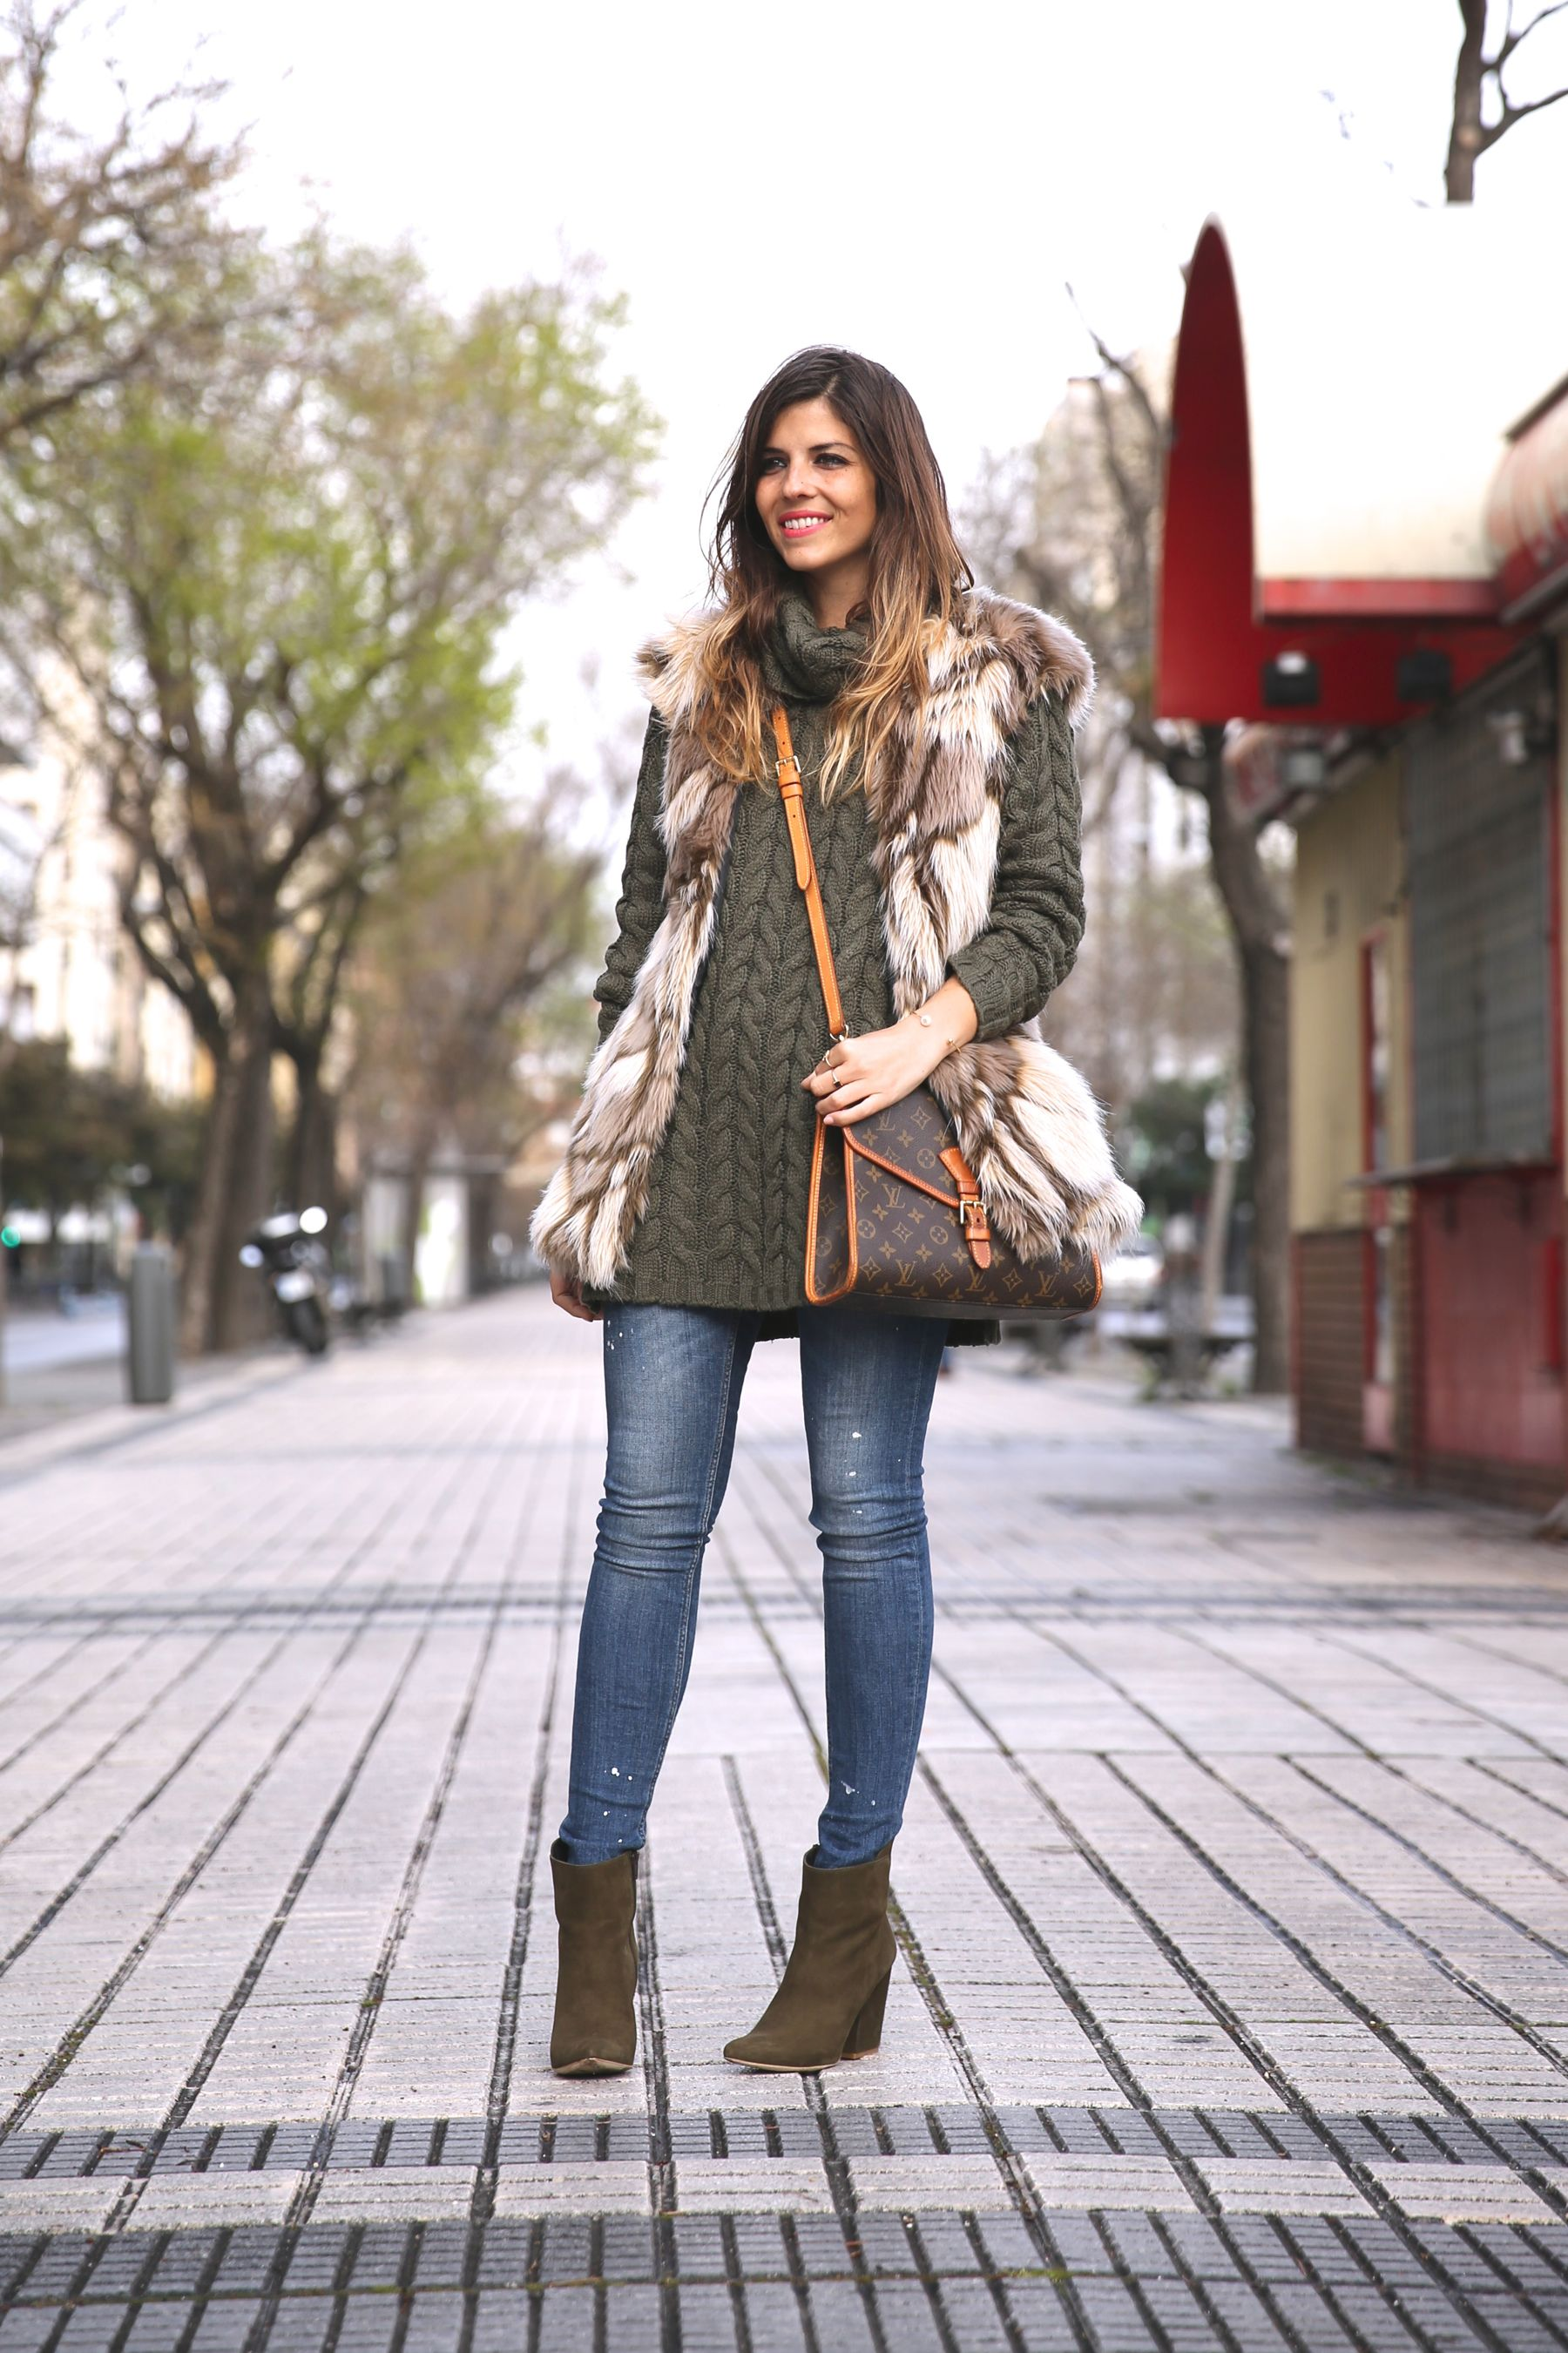 Khaki and Beige Look – Trendy